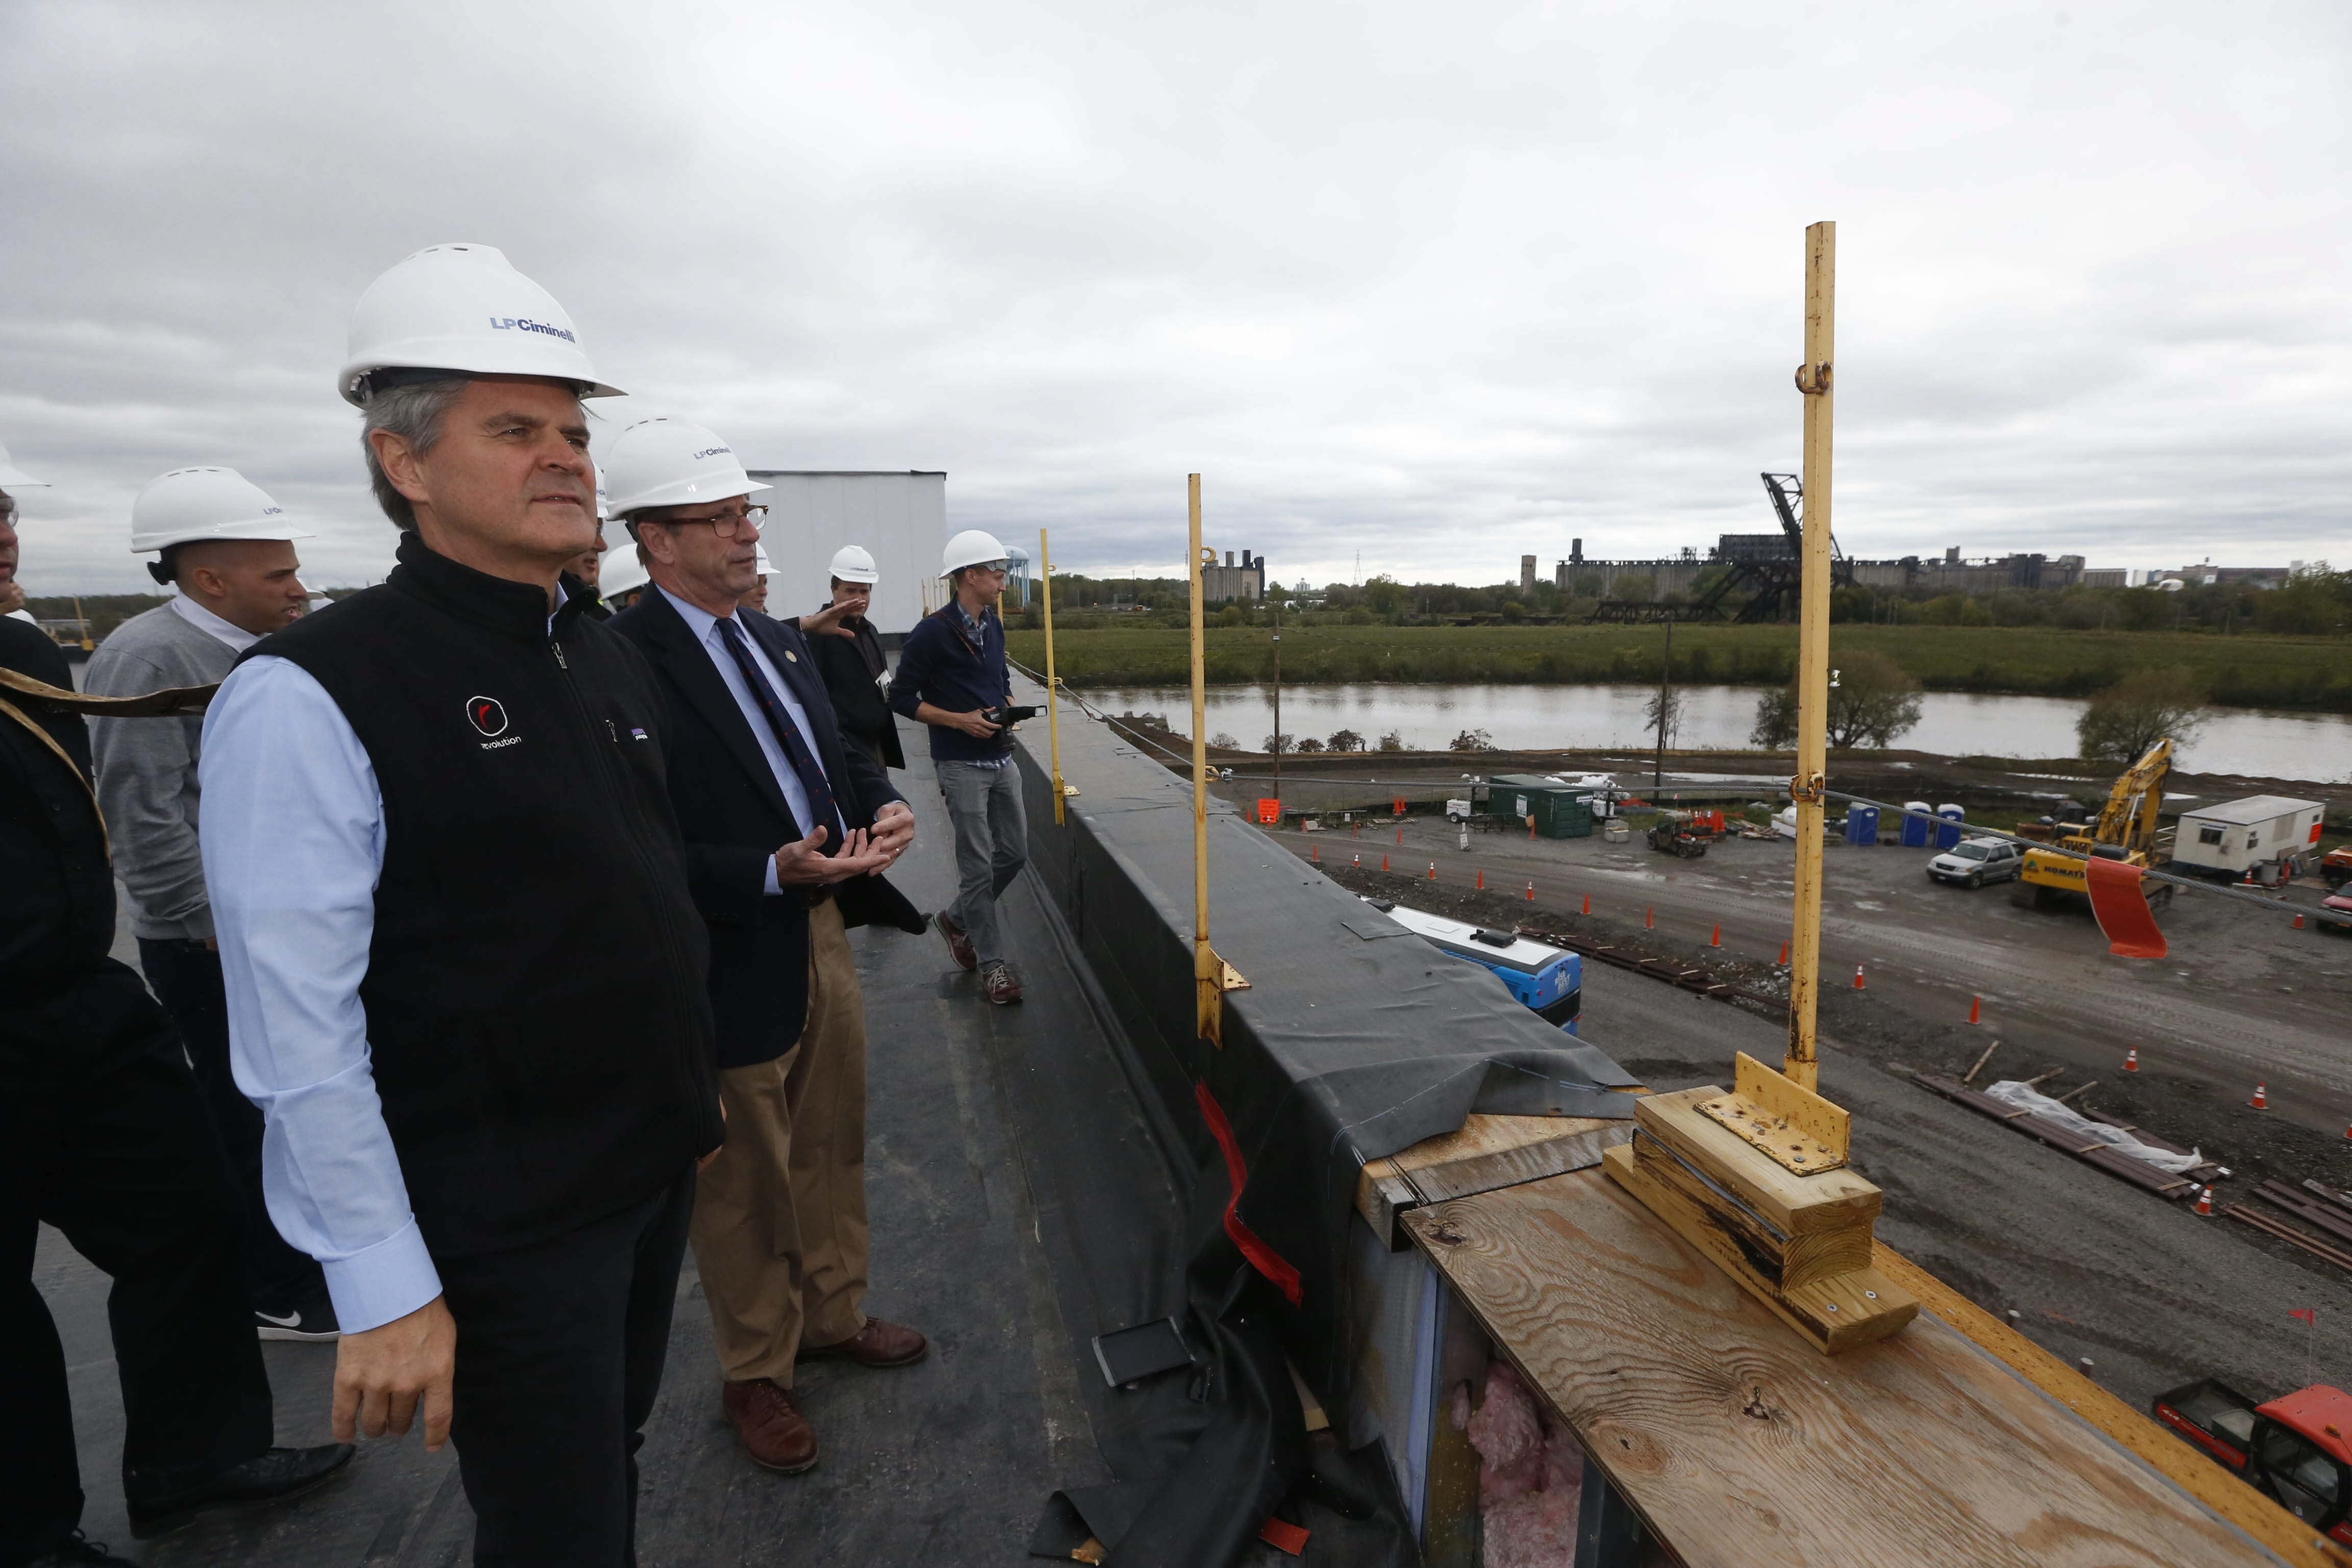 Steve Case's day included, top, Solar City with Peter K. Cutler; and from left, CanalSide with OneBuffalo beer; a tour boat with Thurman Thomas; and a chat with Robert Gioia, Erie Canal Harbor Development's chairman.